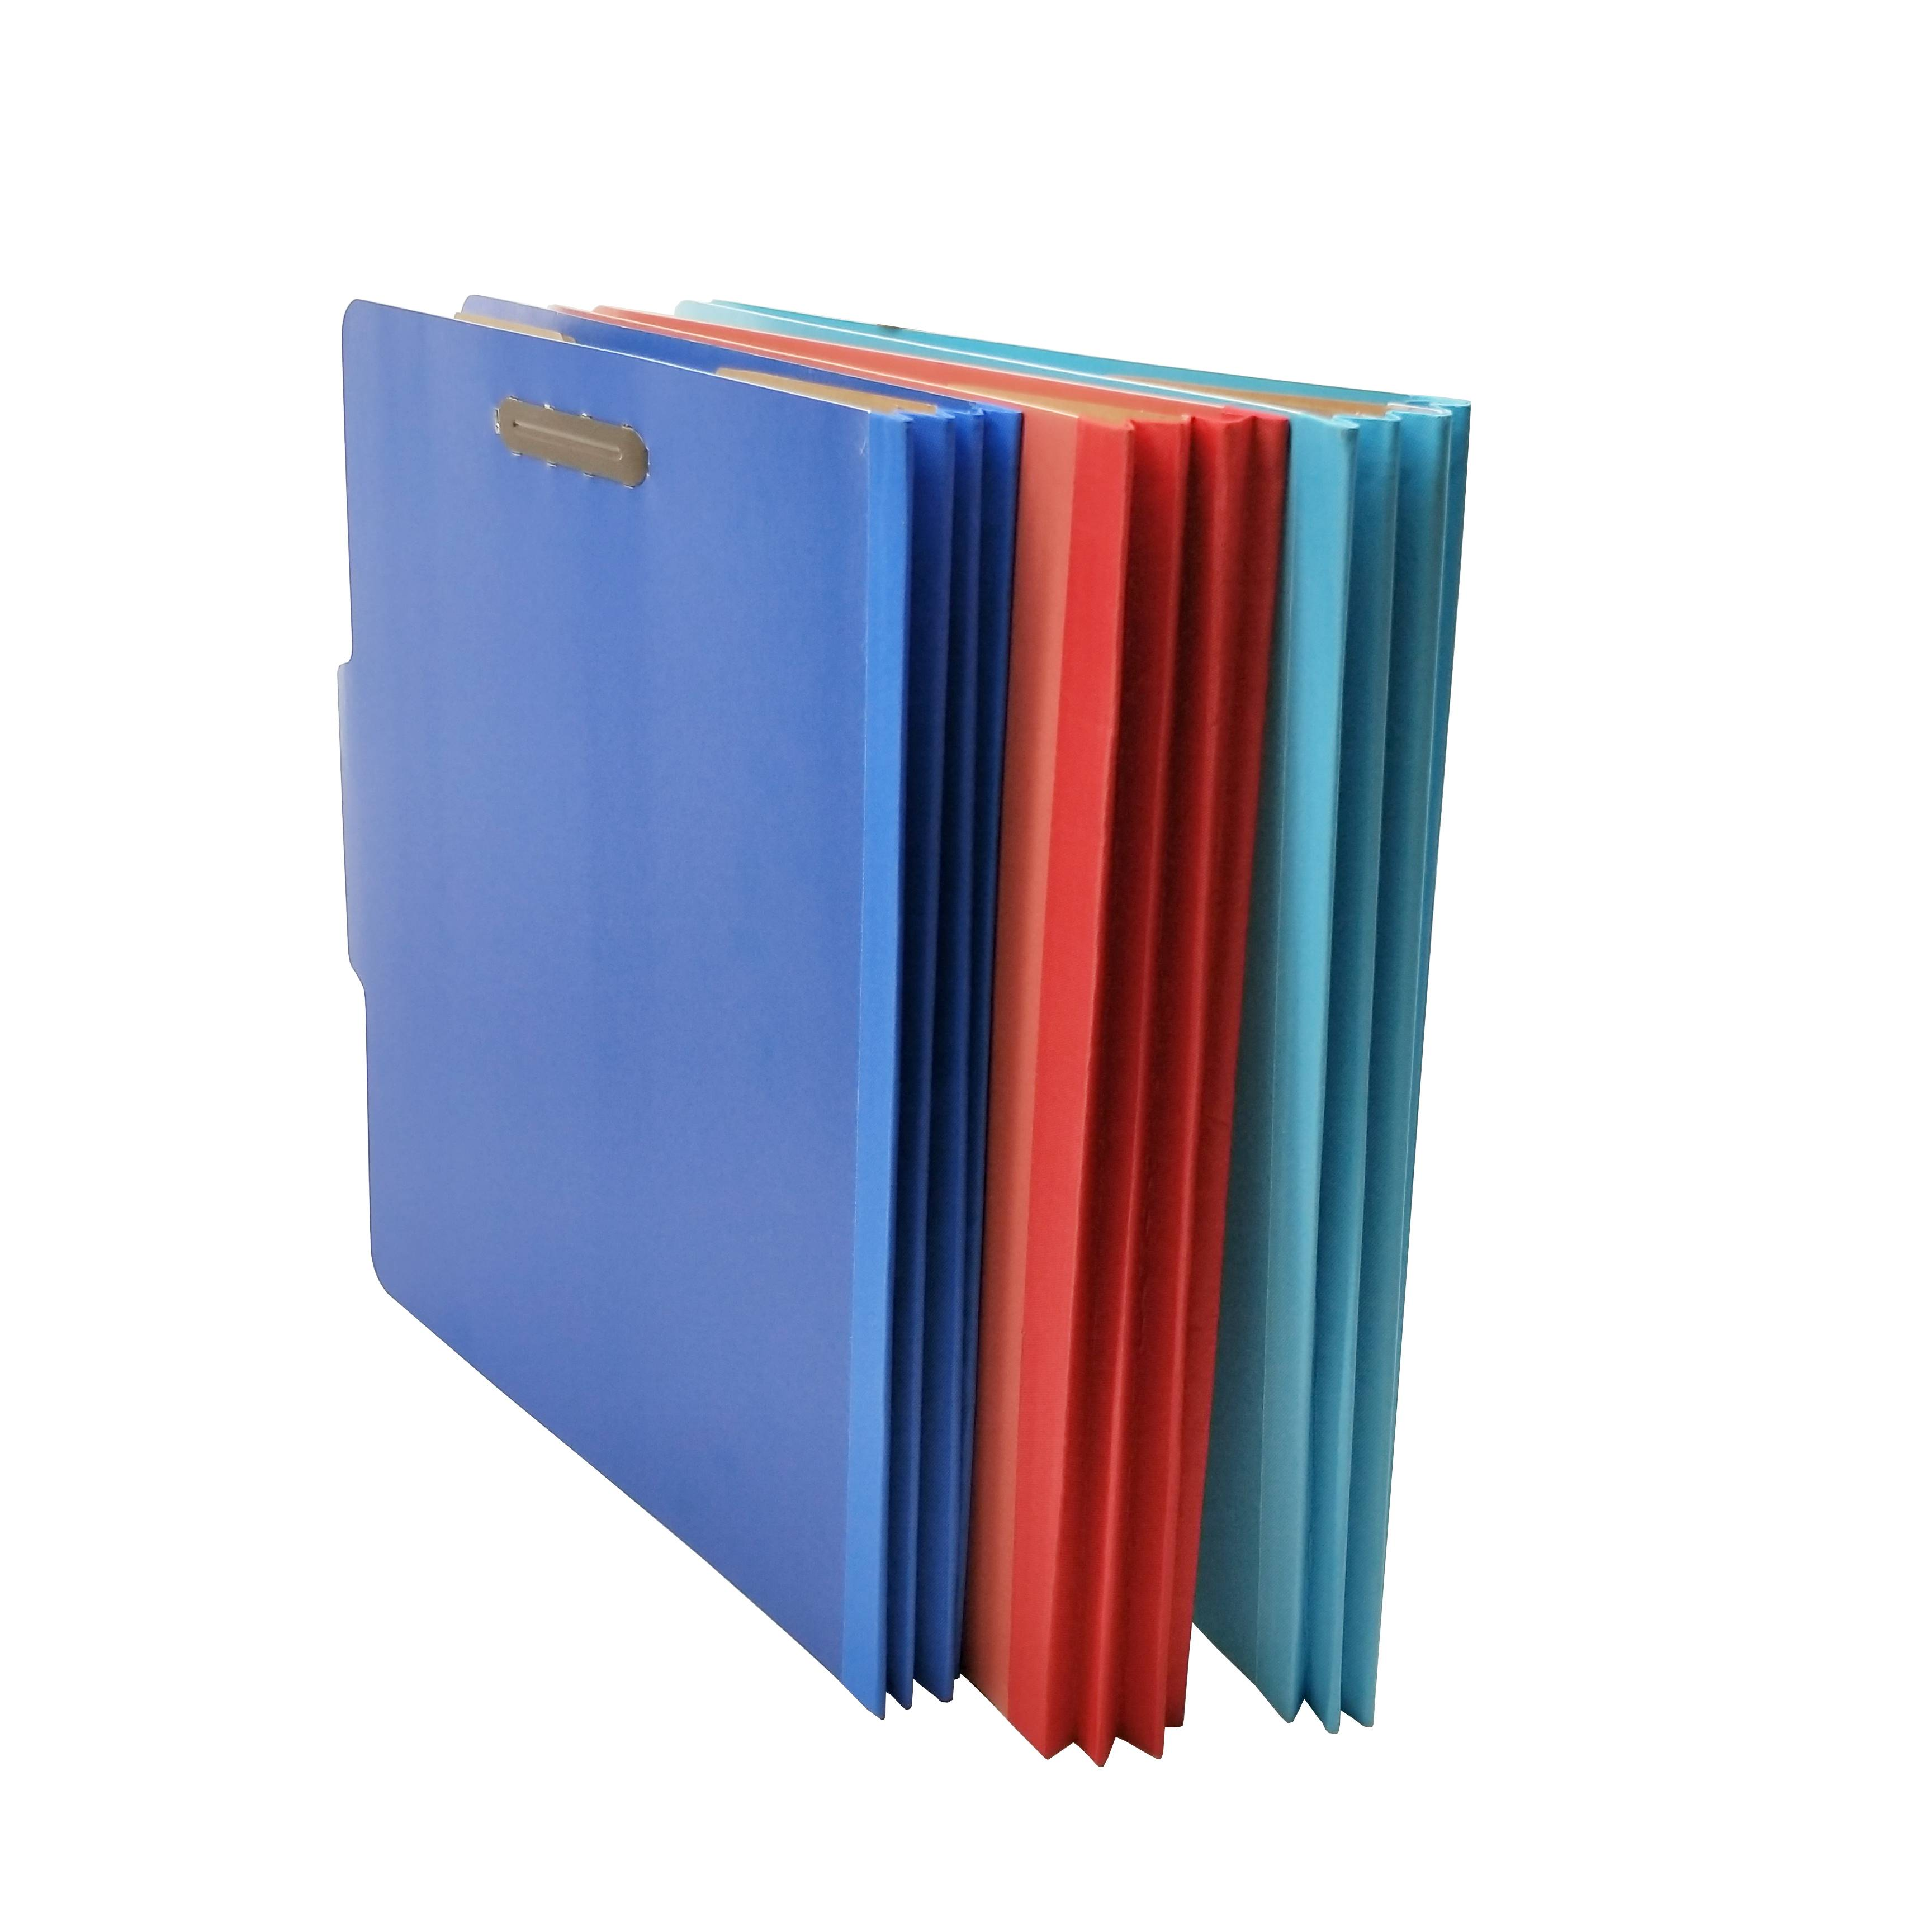 Letter Size Pressboard Fastener File Folders Designed to Organize Standard Medical Files, Office Reports